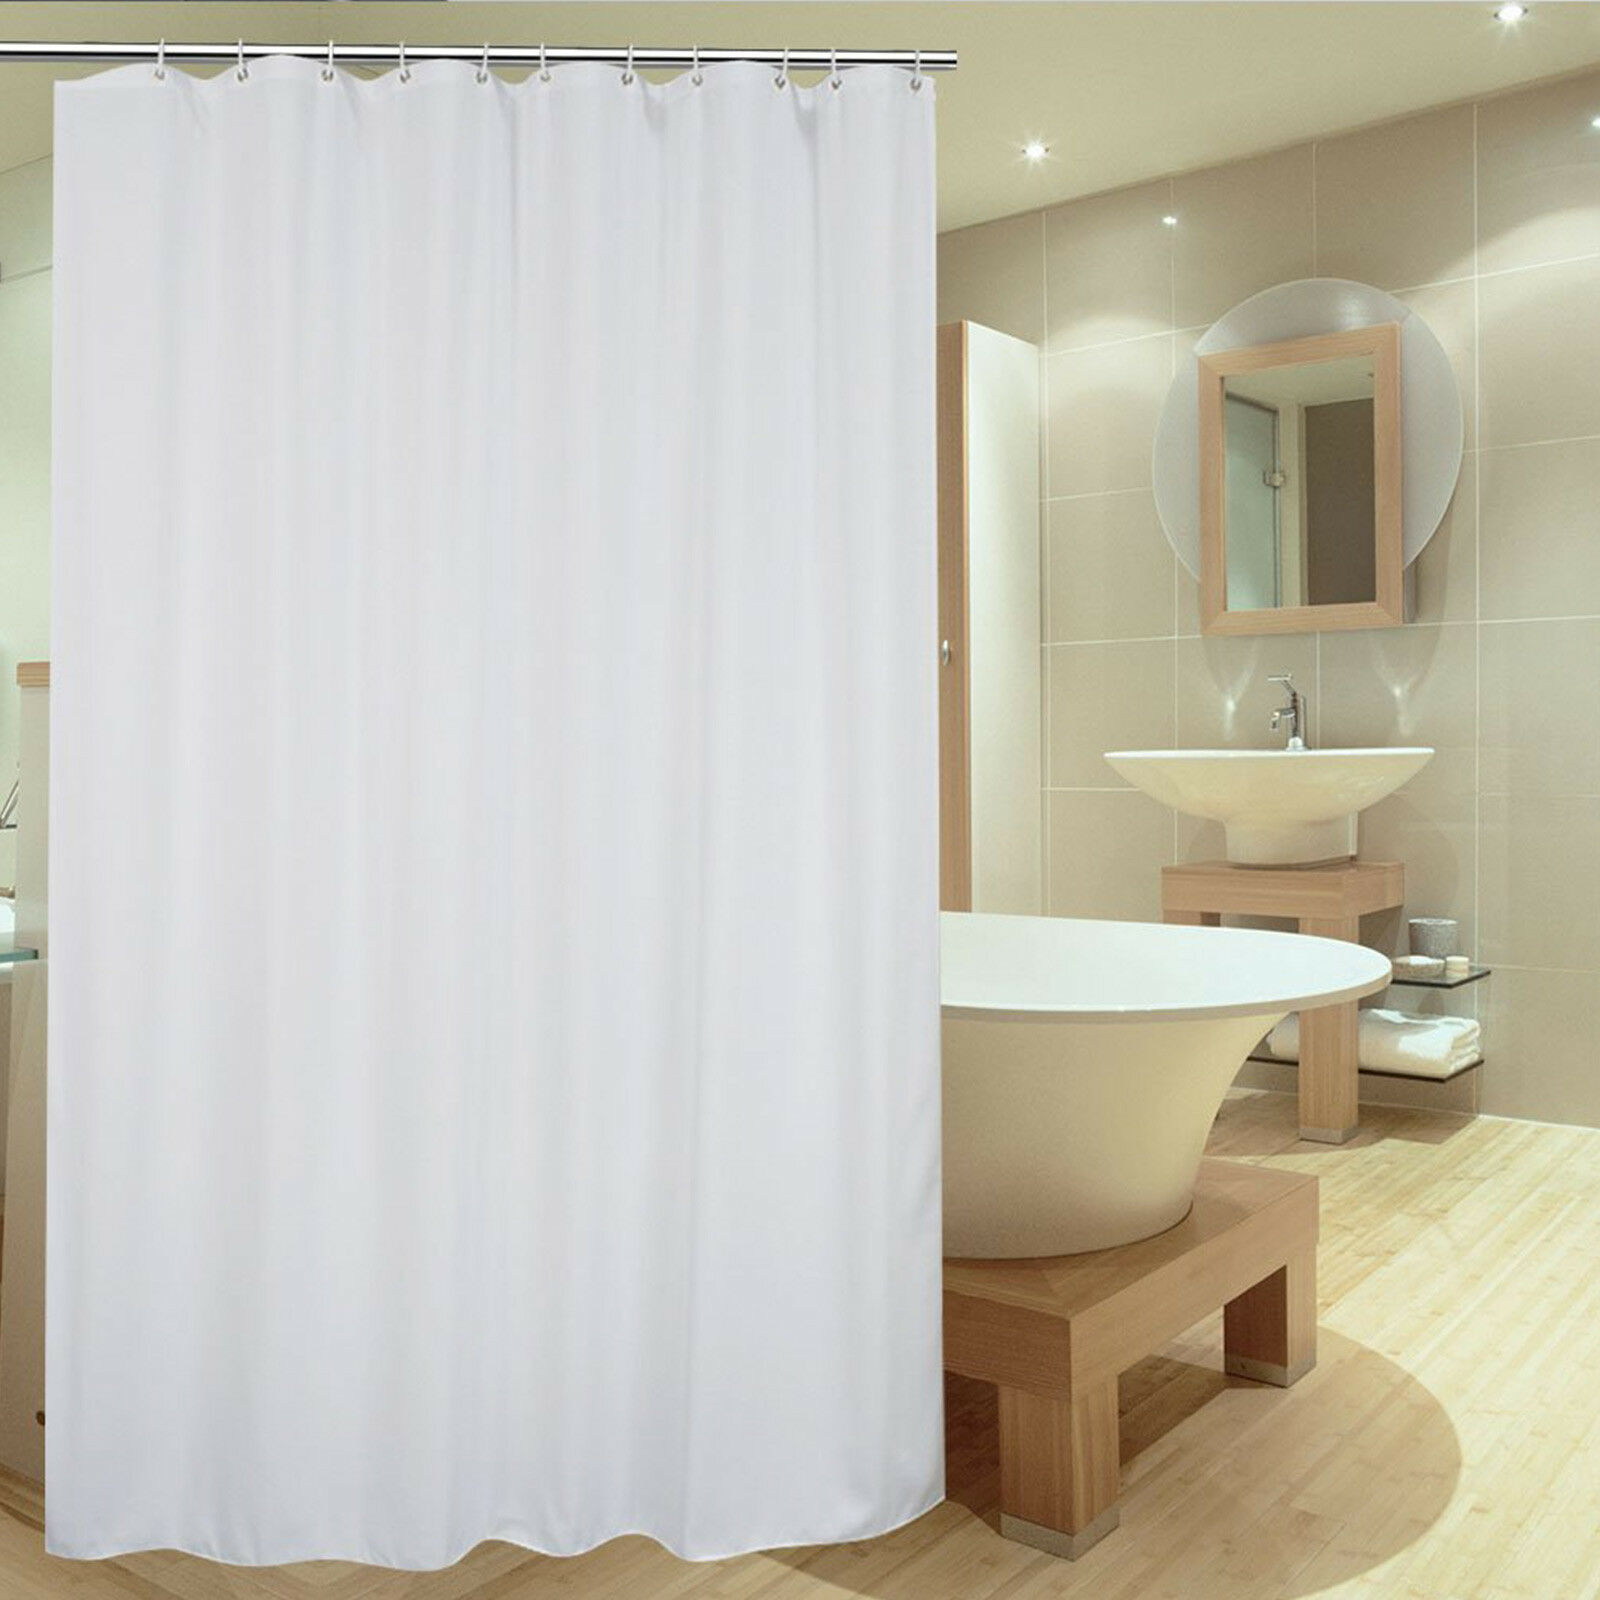 Details About 3mx2m Extra Long Waterproof White Plain Shower Curtain Bathroom With Hook Ring